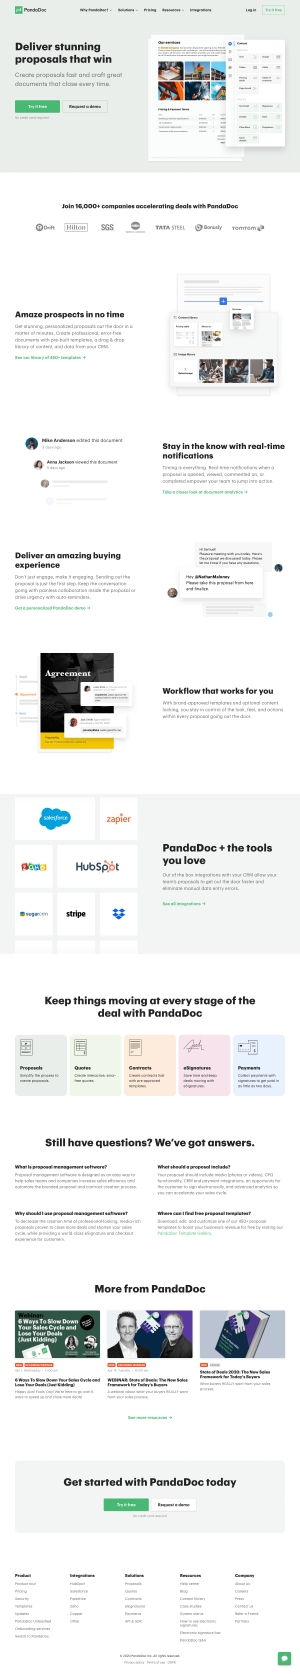 PandaDoc – Features page 2